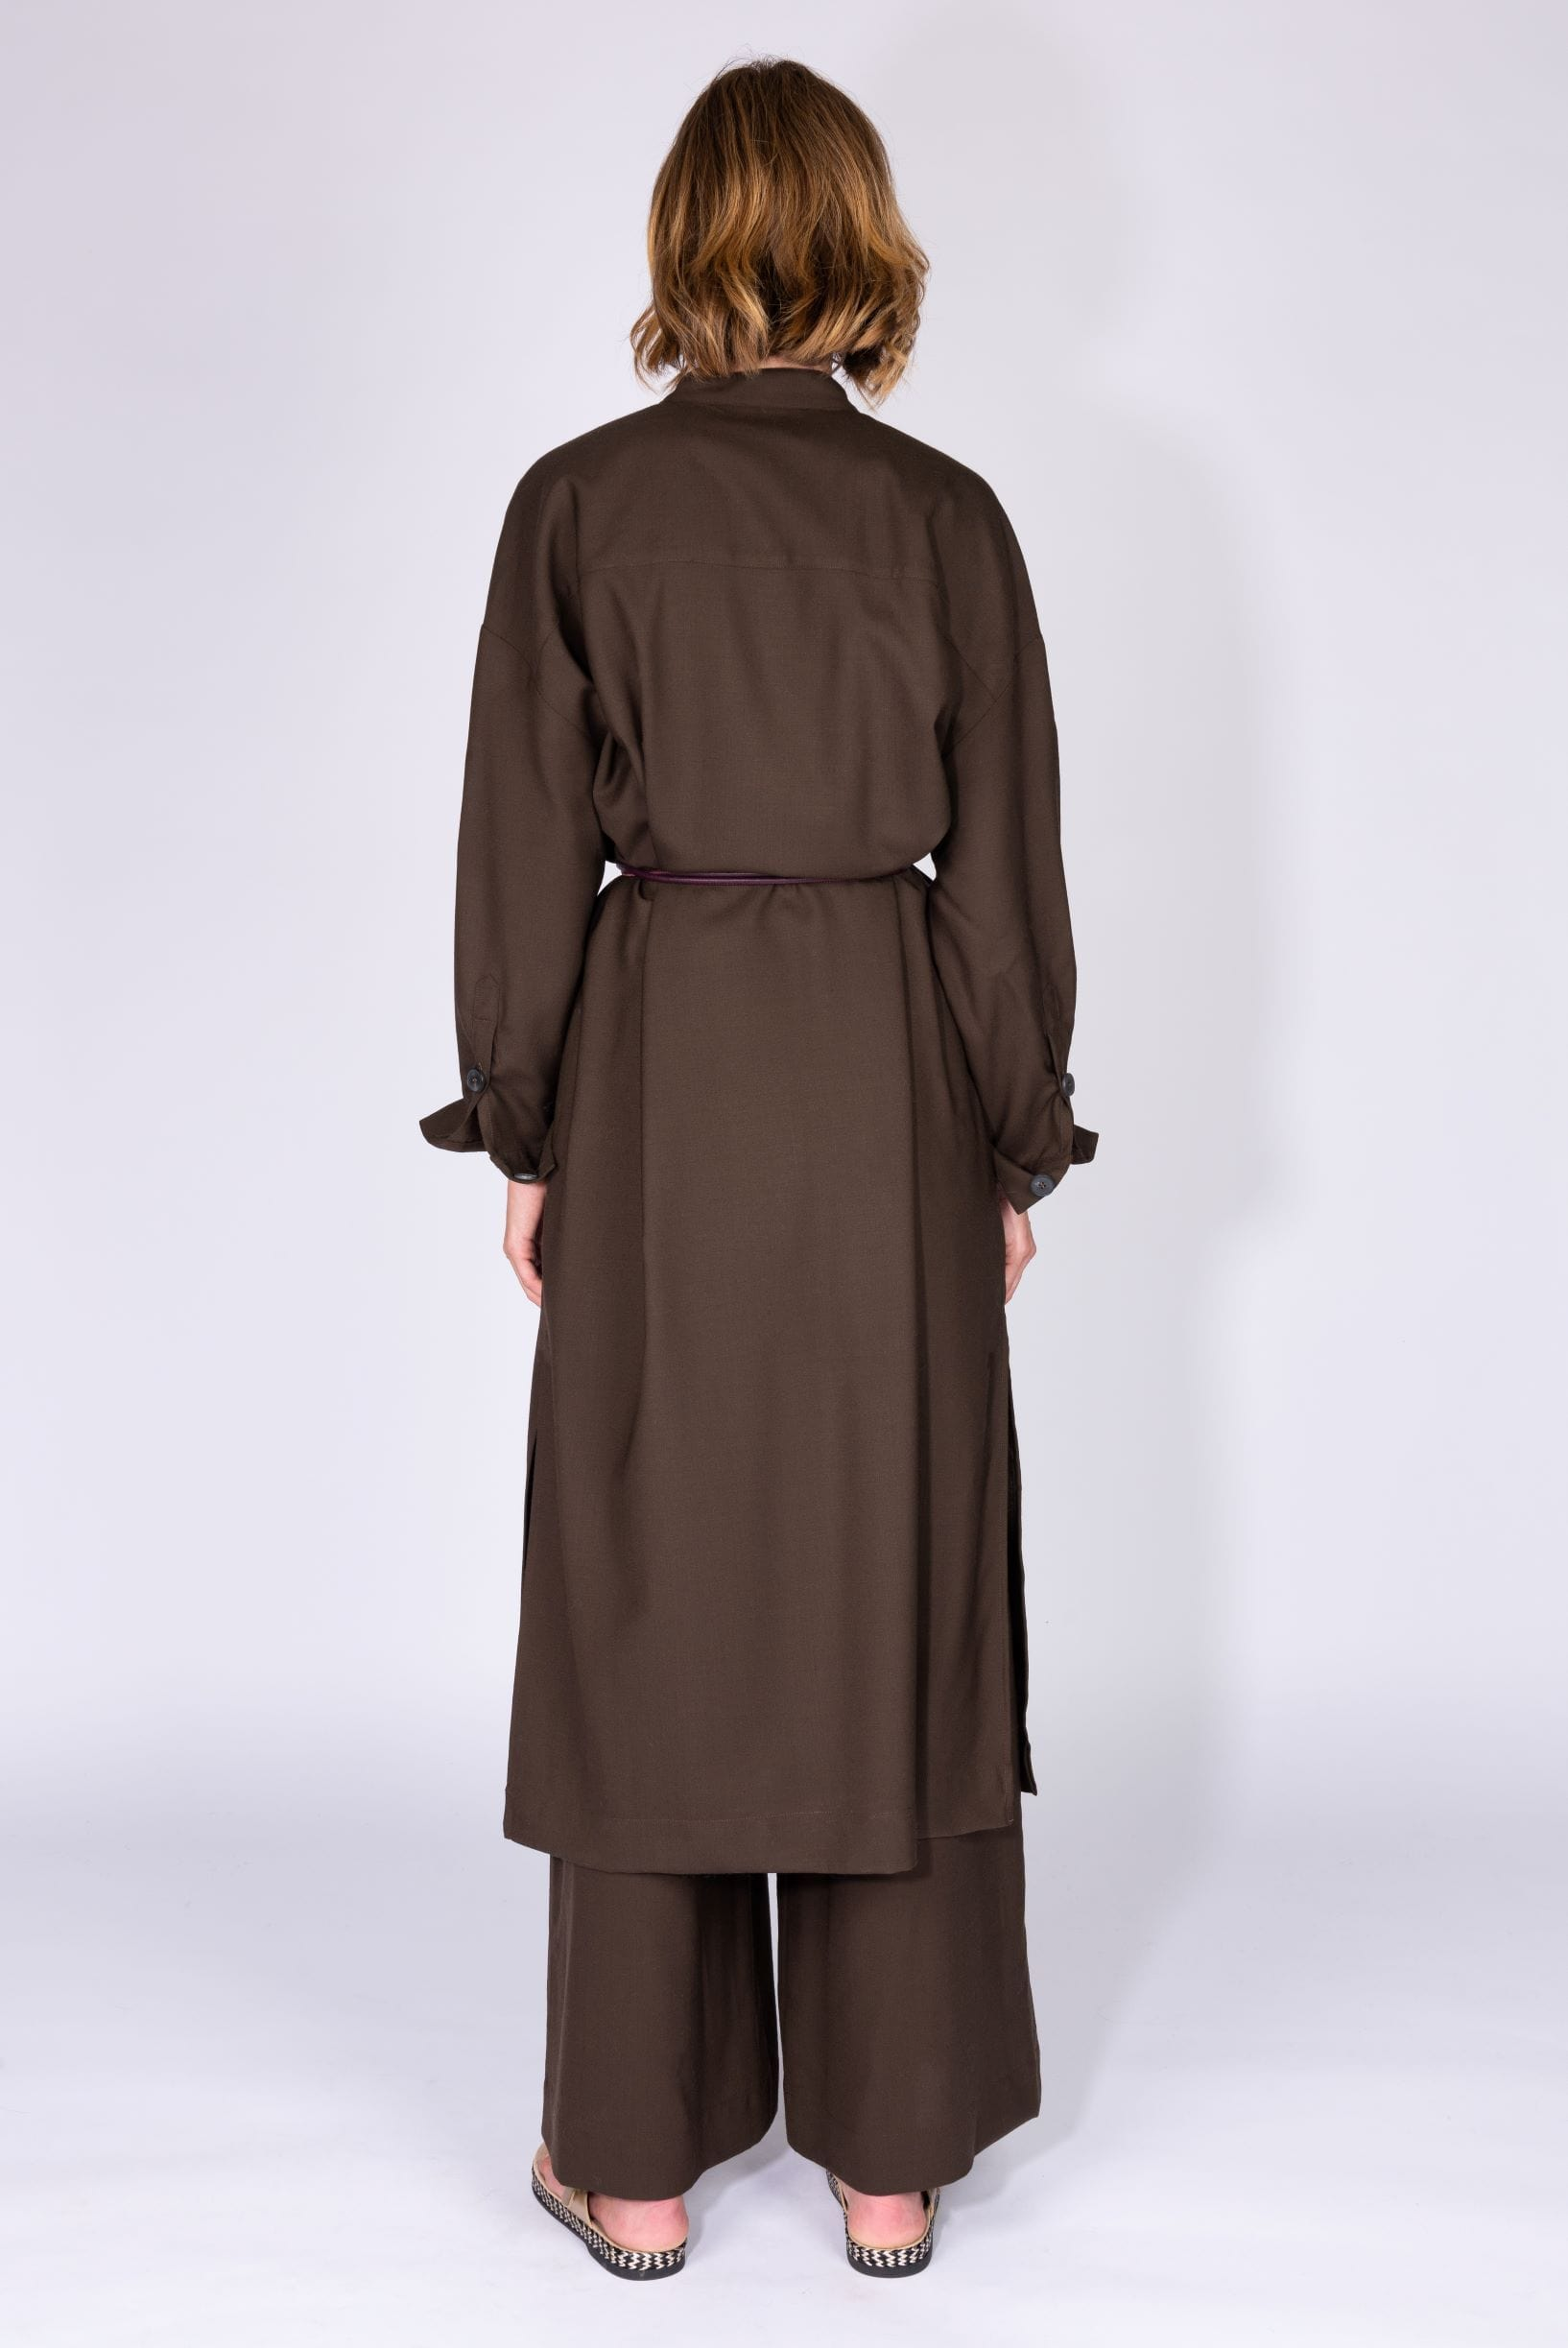 Merino wool maxi shirt dress from Phisique du Role